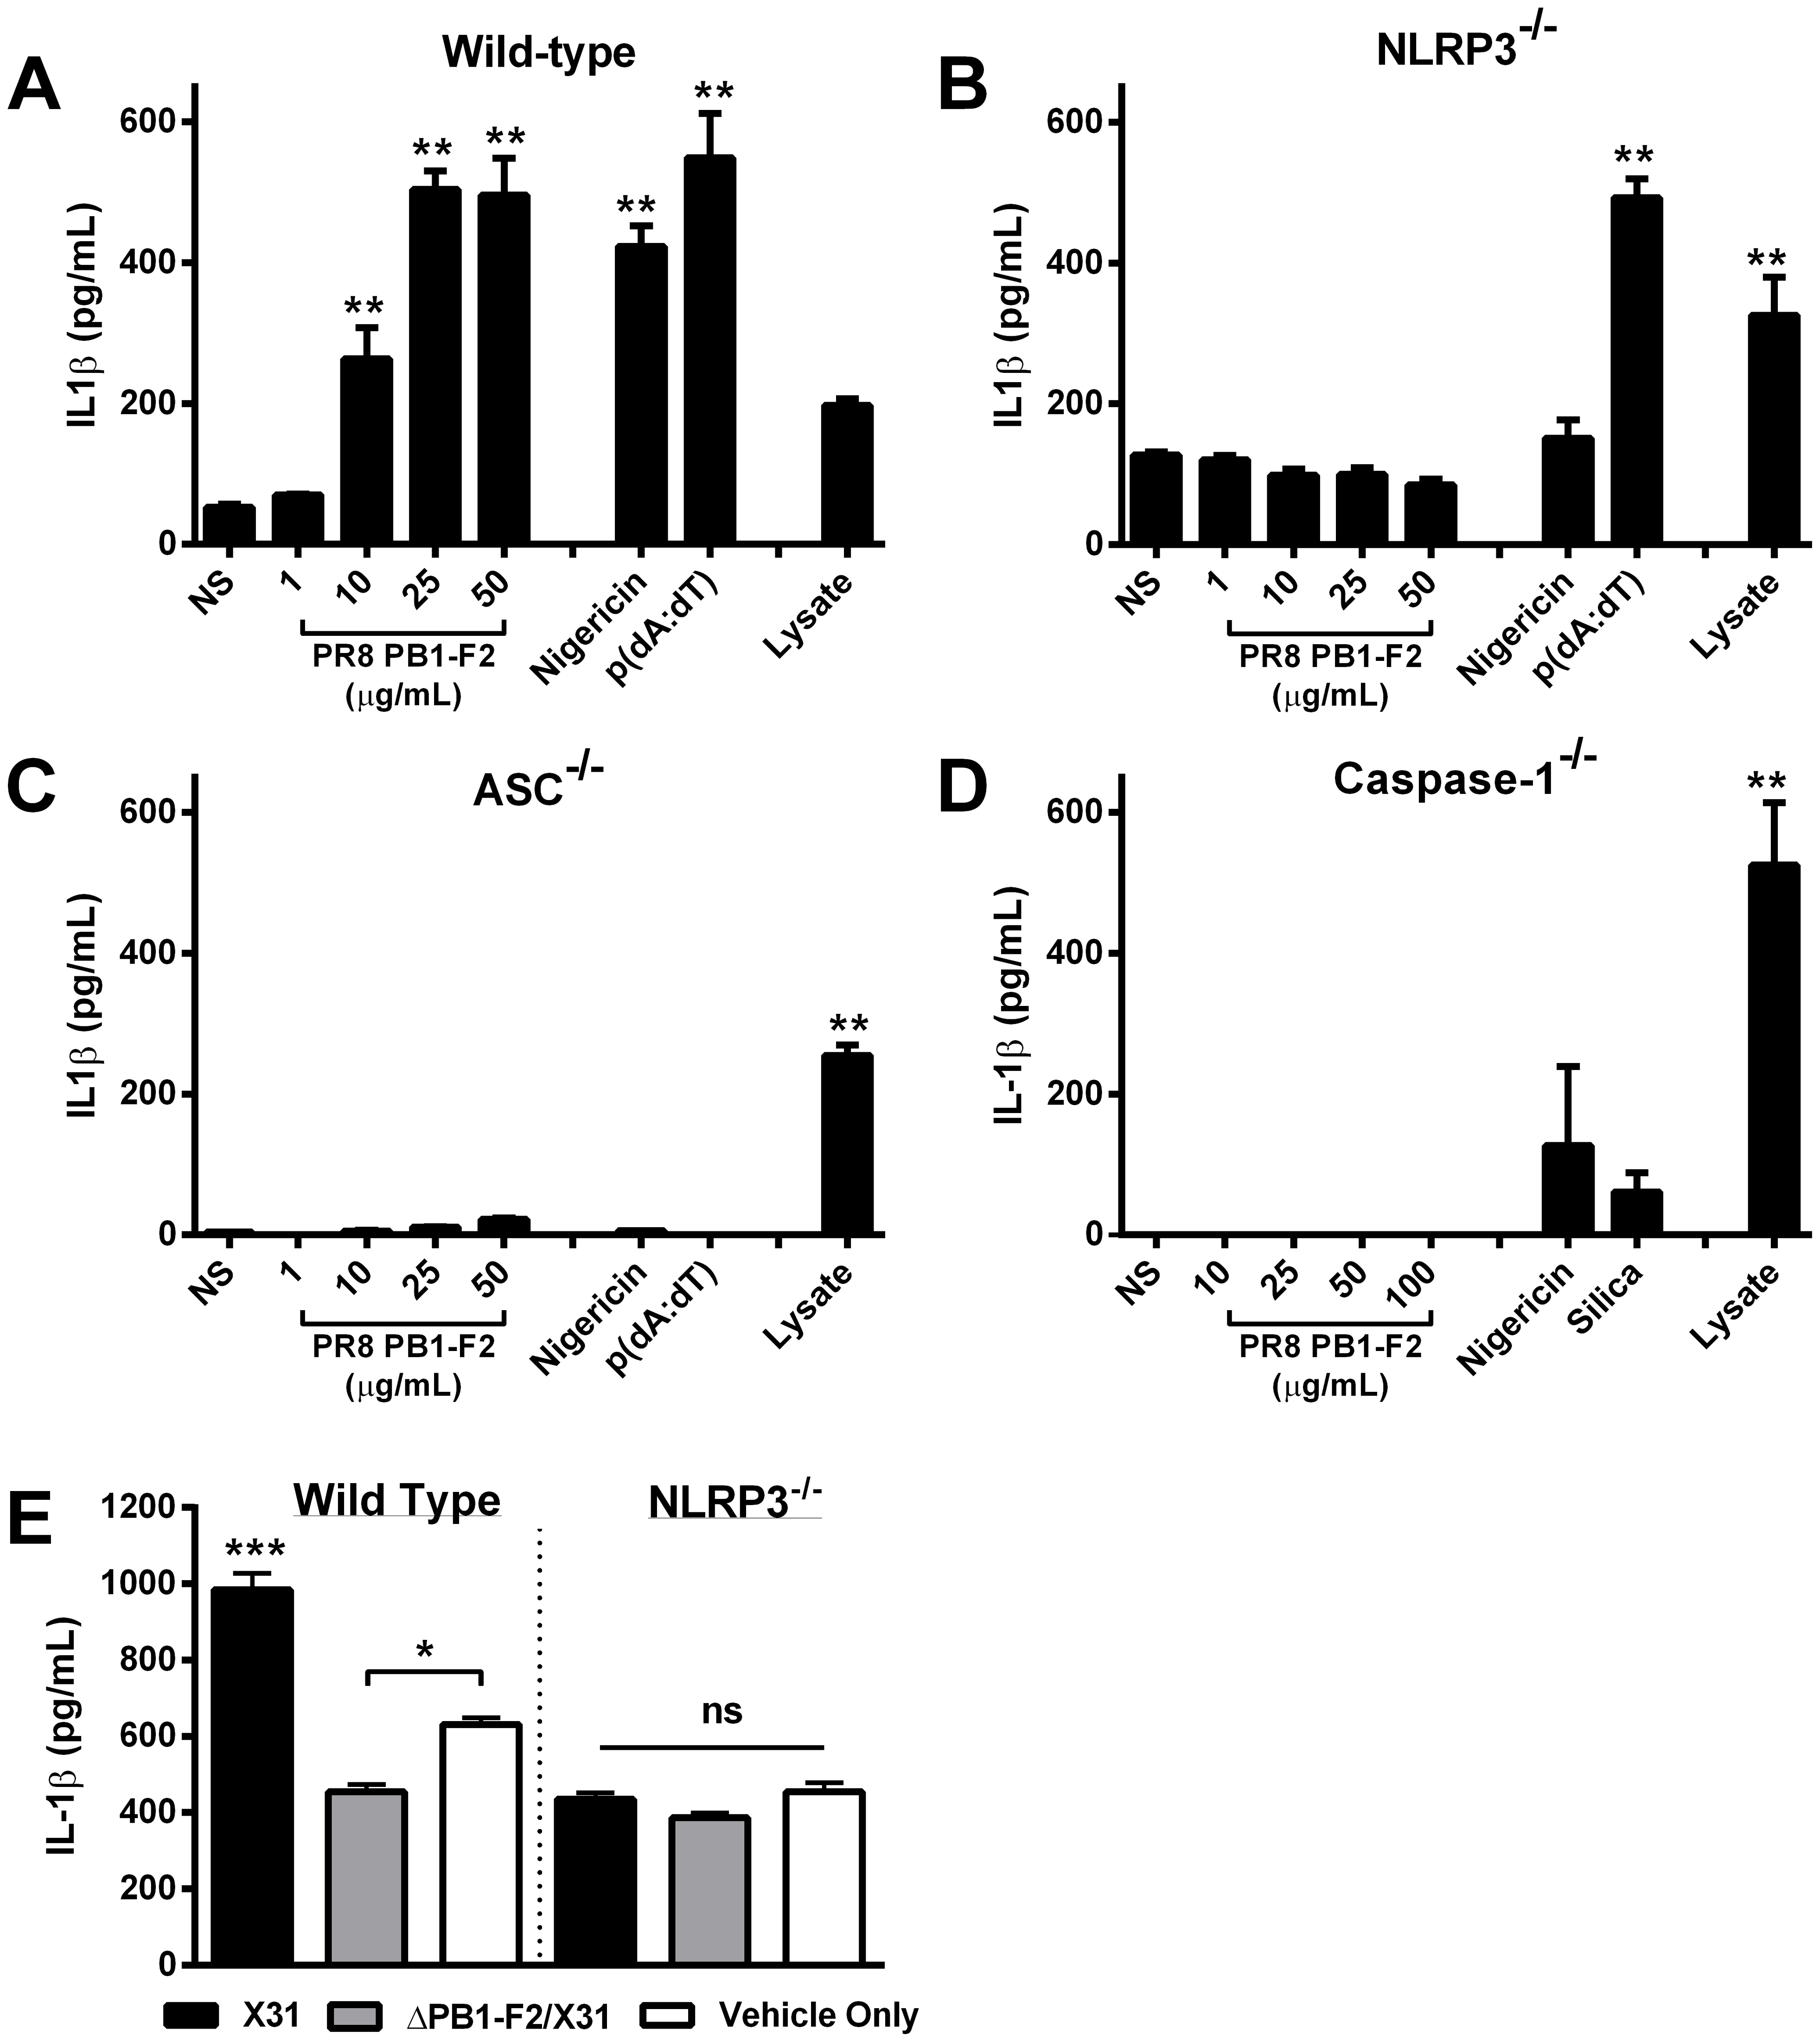 Murine cells unable to express NLRP3-inflammasome complex activators are not stimulated by PR8 PB1-F2 peptide.